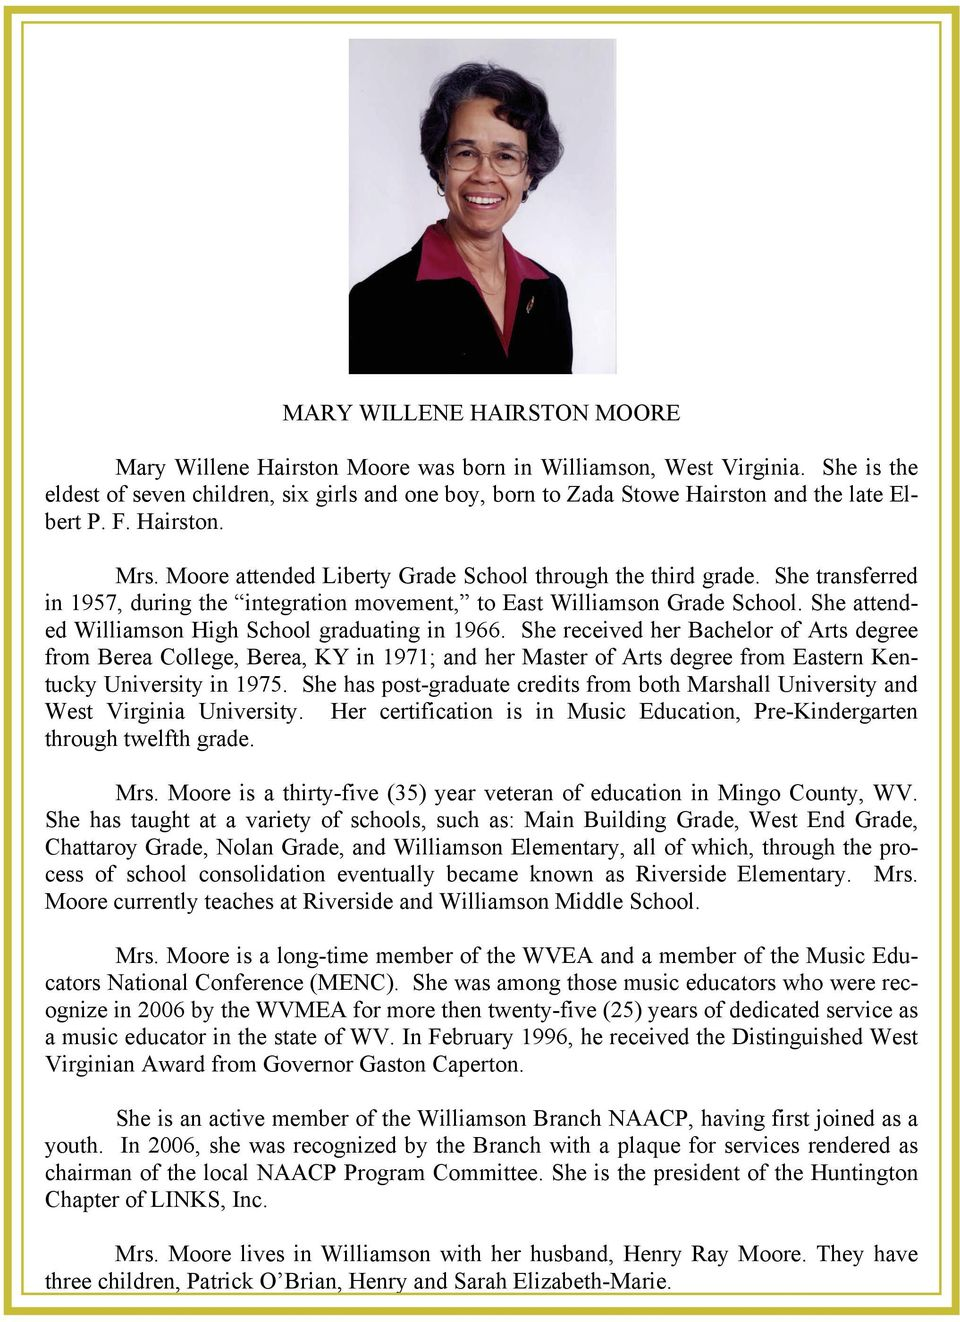 She transferred in 1957, during the integration movement, to East Williamson Grade School. She attended Williamson High School graduating in 1966.